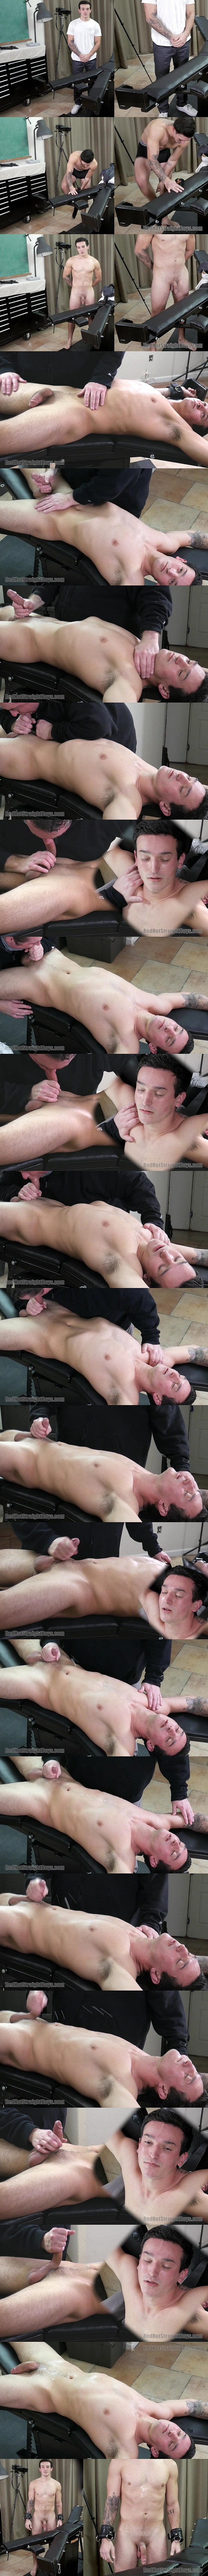 Master Tom sucks fit straight jock Colby Sawyer's dick before he strokes a big juicy load out of Colby's hard boner in Colby's First Gay Blowjob at Redhotstraightboys 01